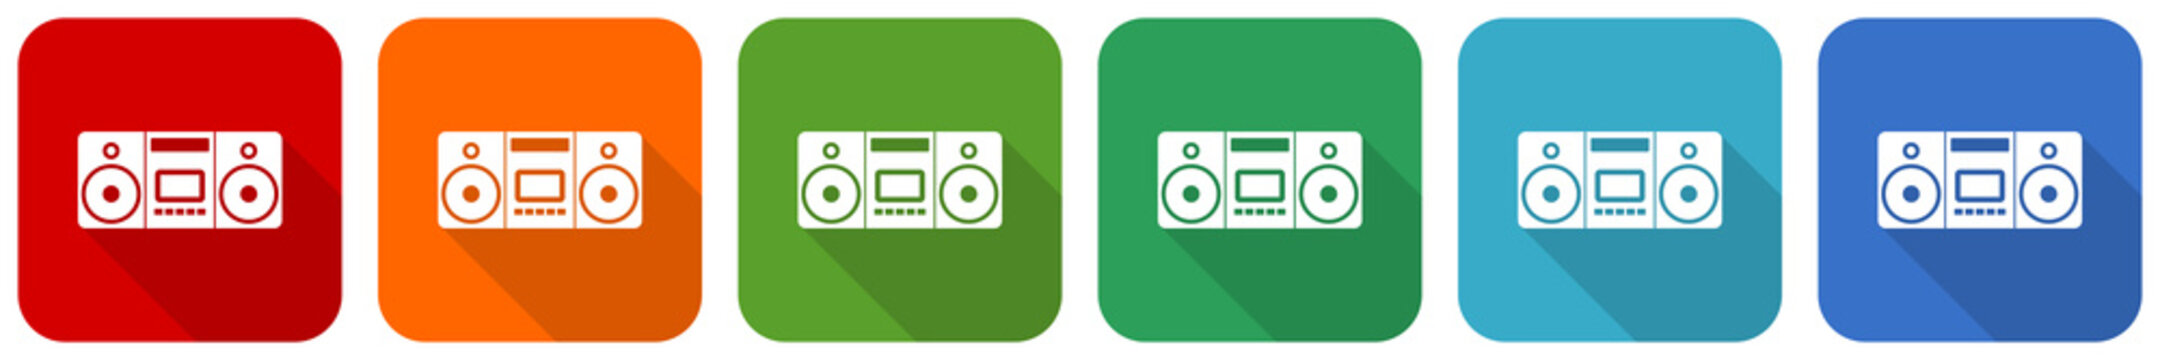 Music, stereo portable equipment icon set, flat design vector illustration in 6 colors options for webdesign and mobile applications